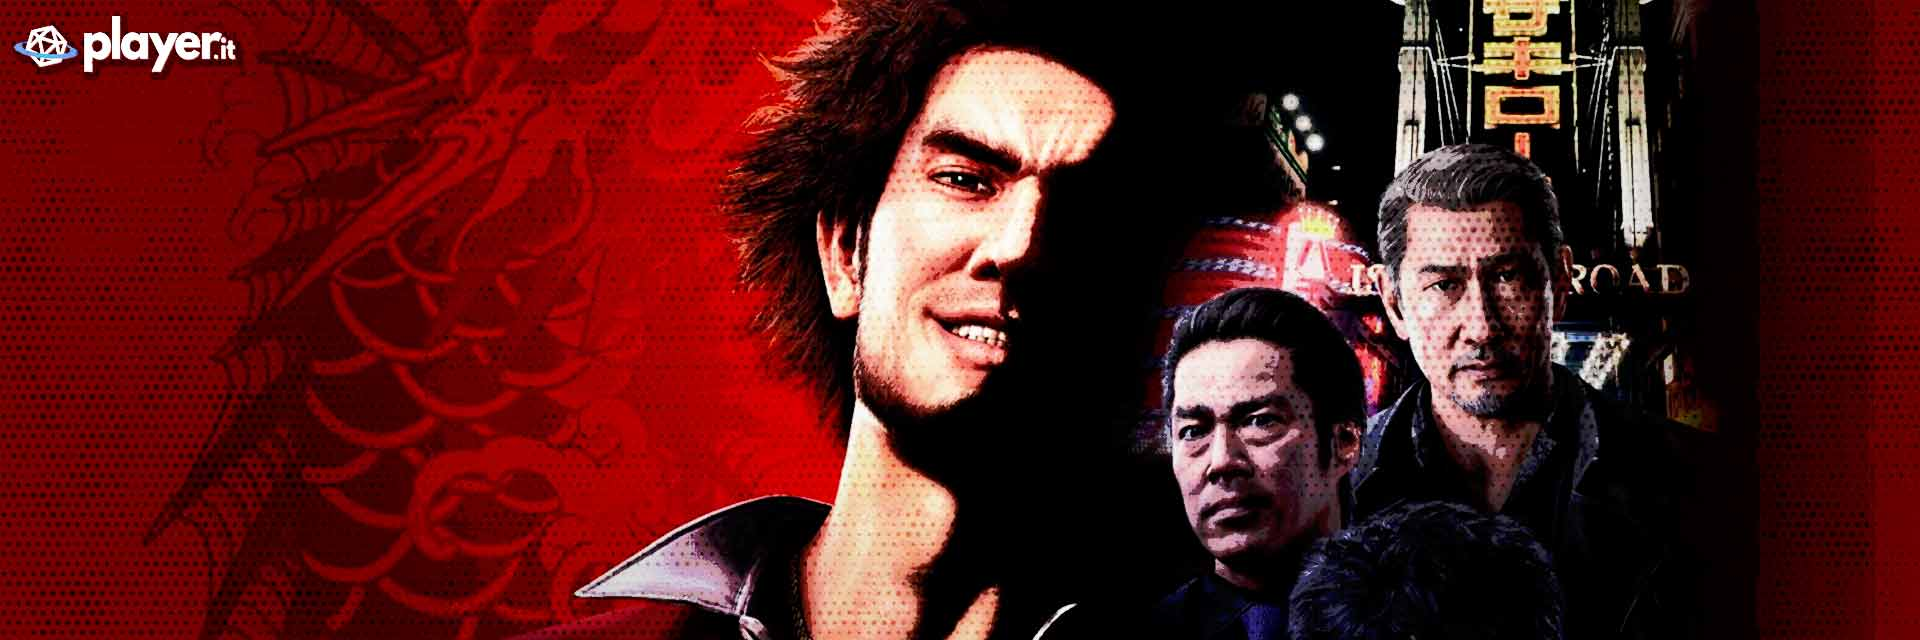 yakuza remastered collection wallpaper in hd